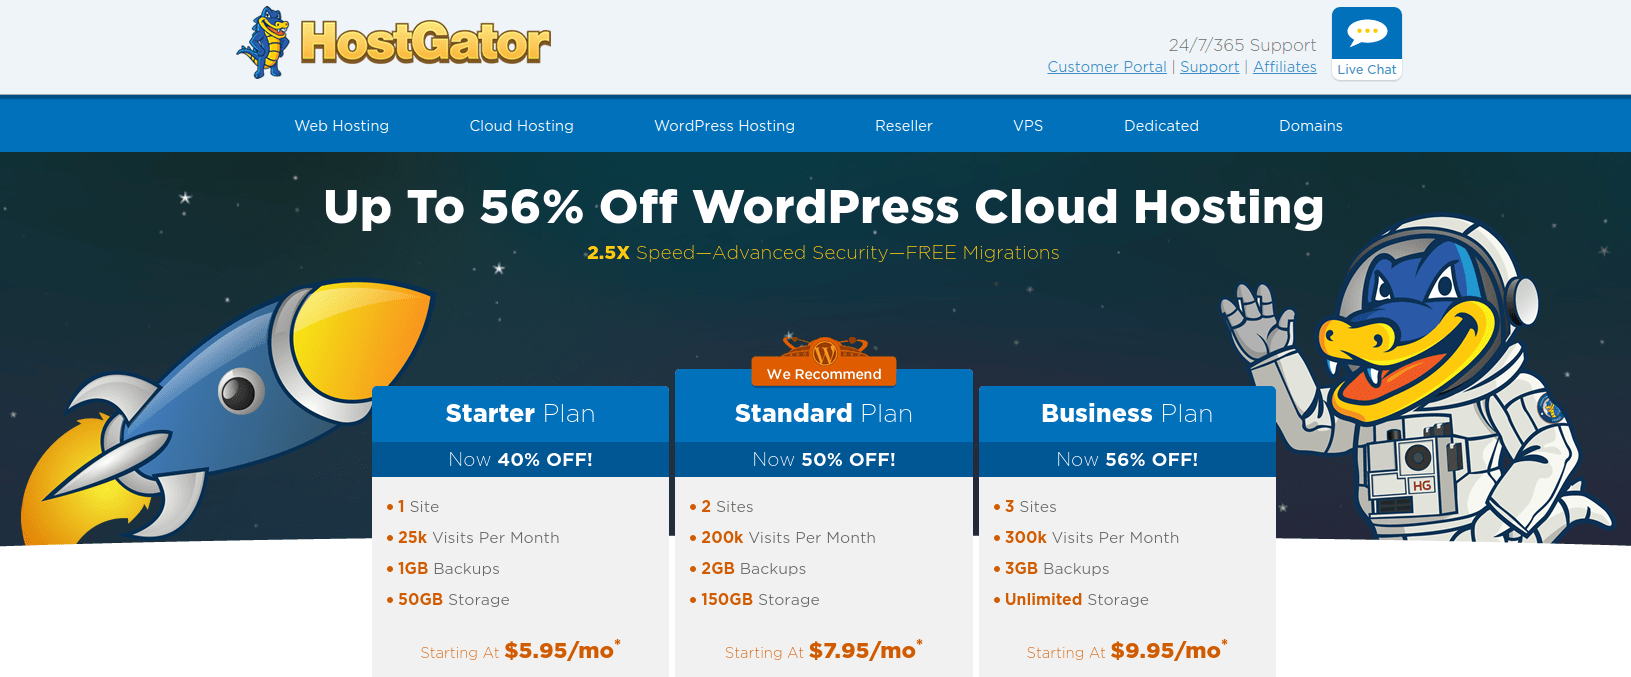 A screenshot of HostGator's pricing for WordPress websites A screenshot of HostGator's pricing for WordPress website hosting